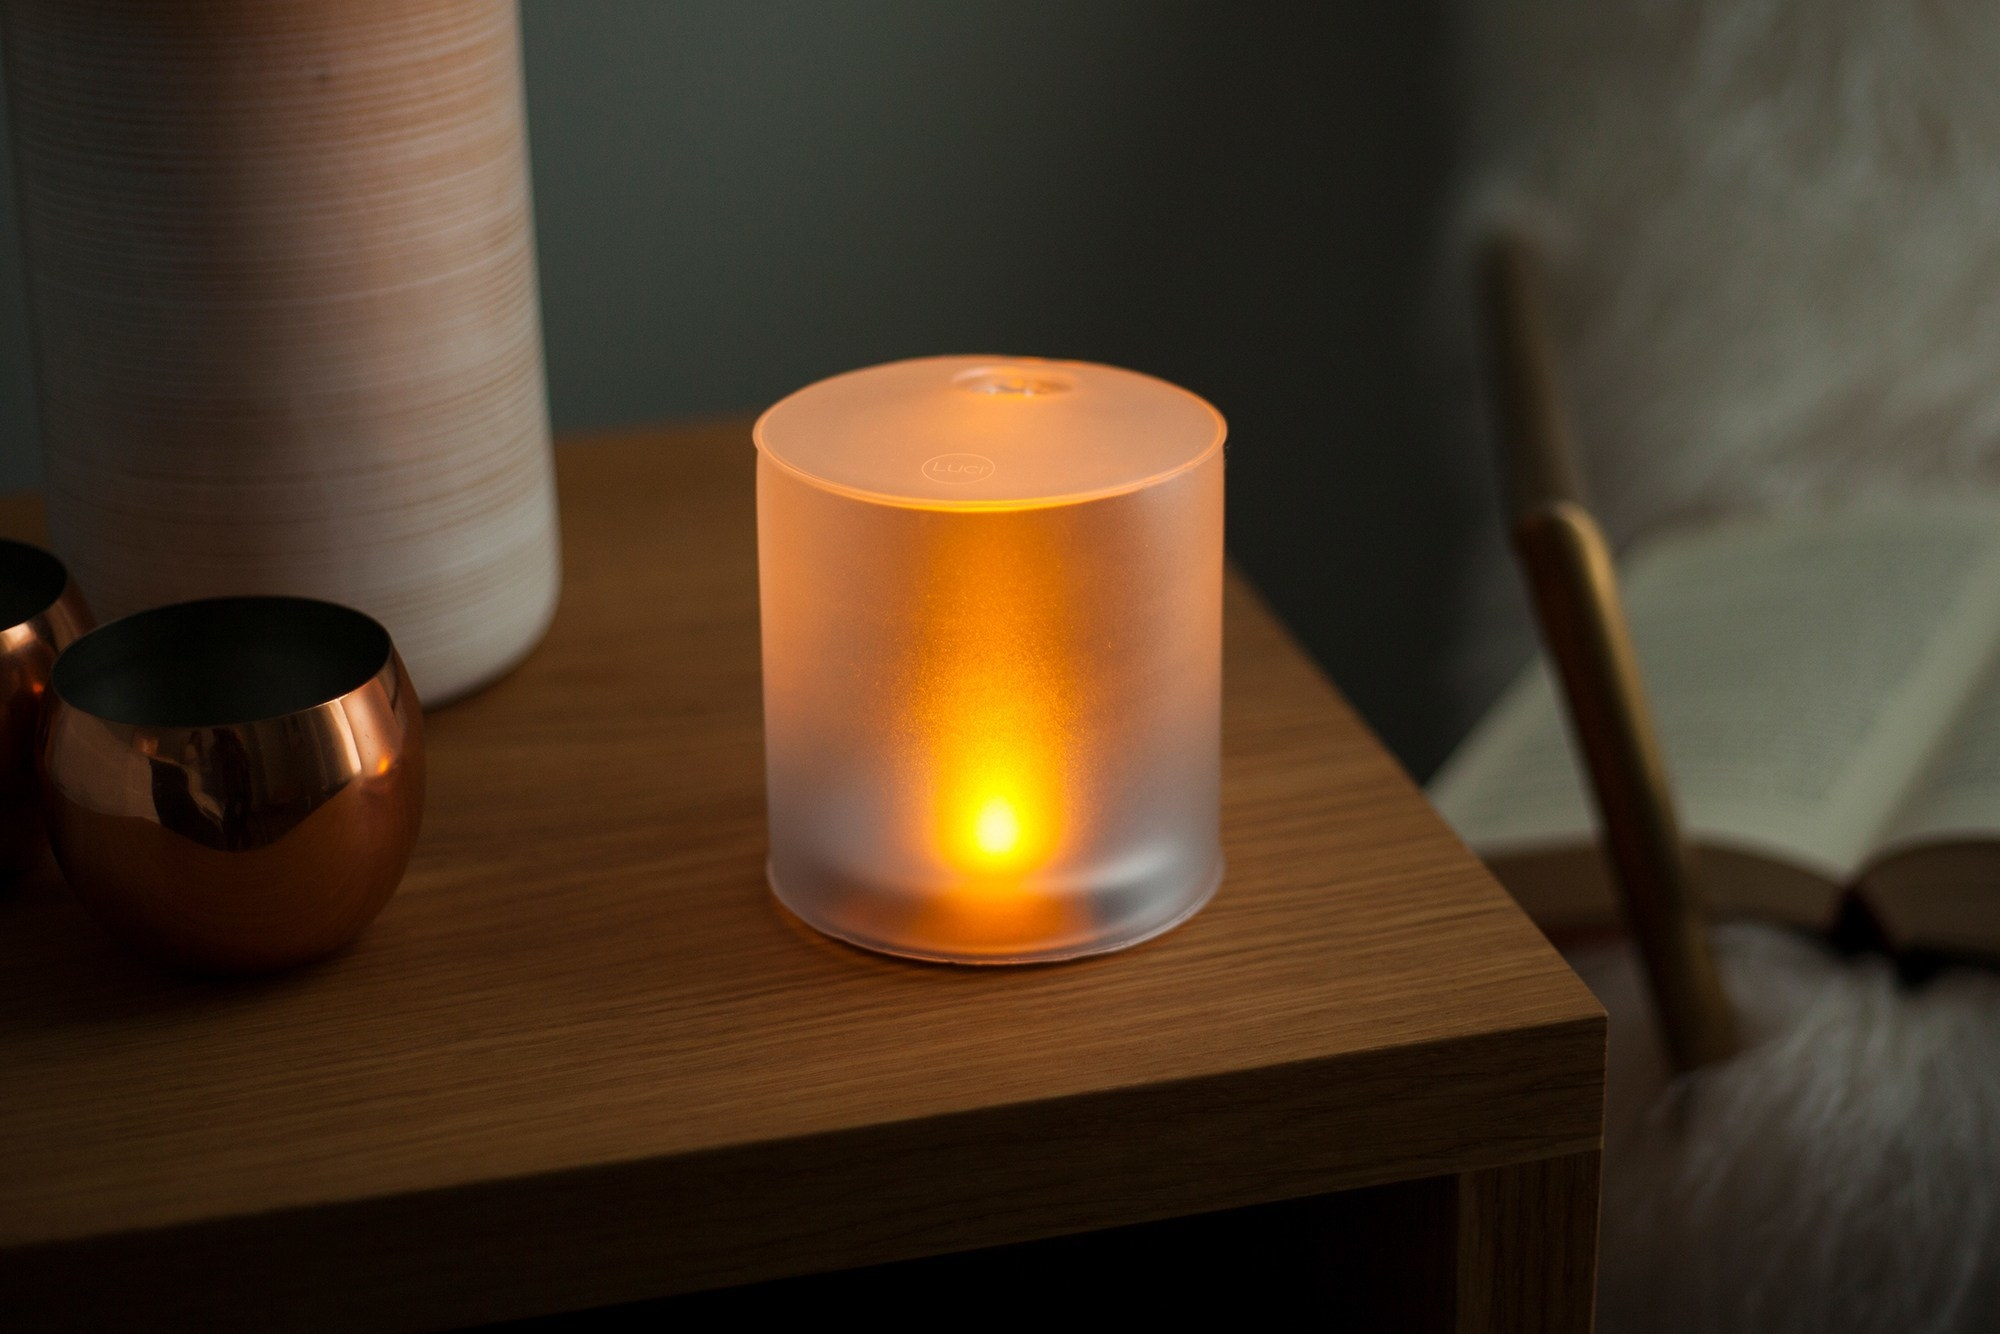 The lantern on a bedside table